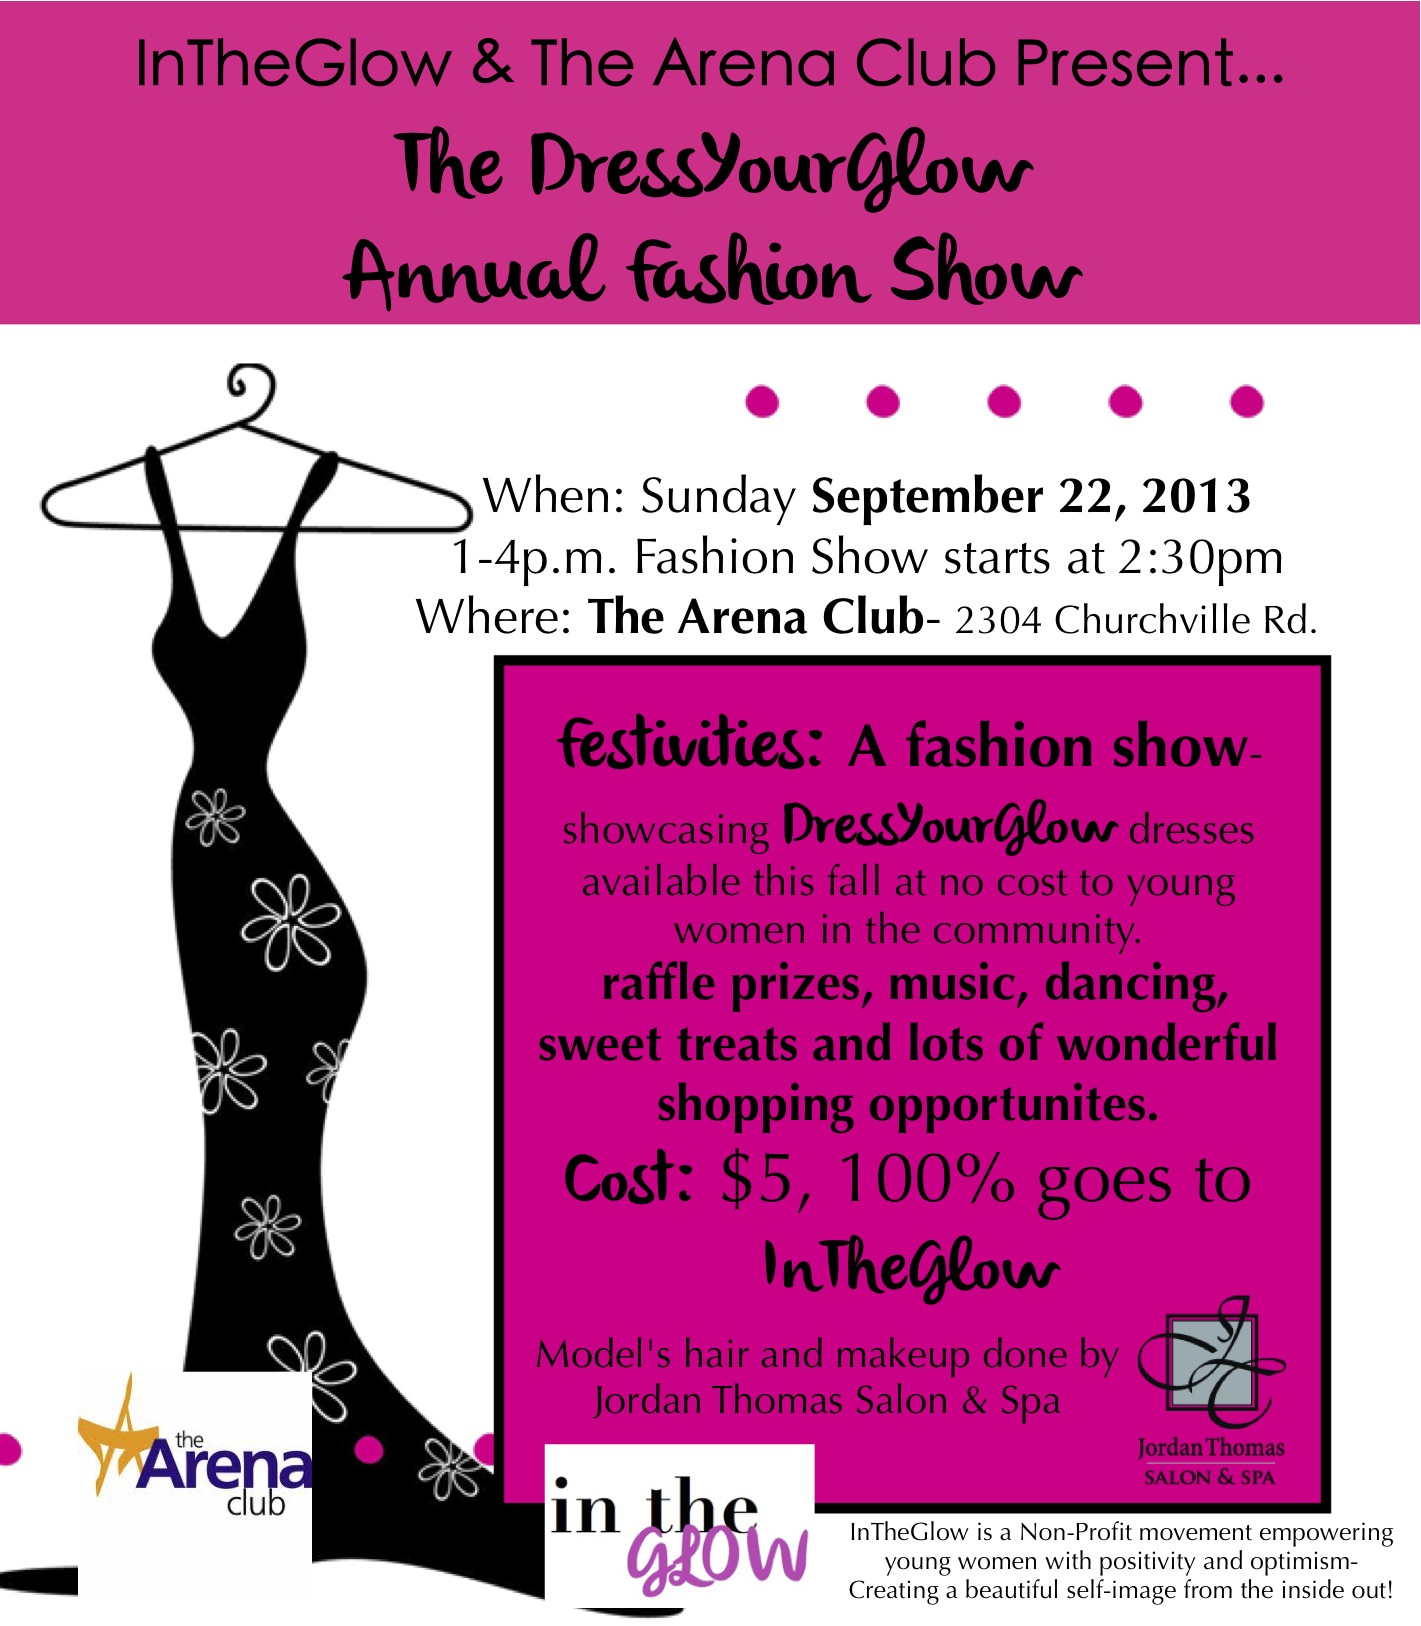 dressyourglow fashion show at the arena club sunday to